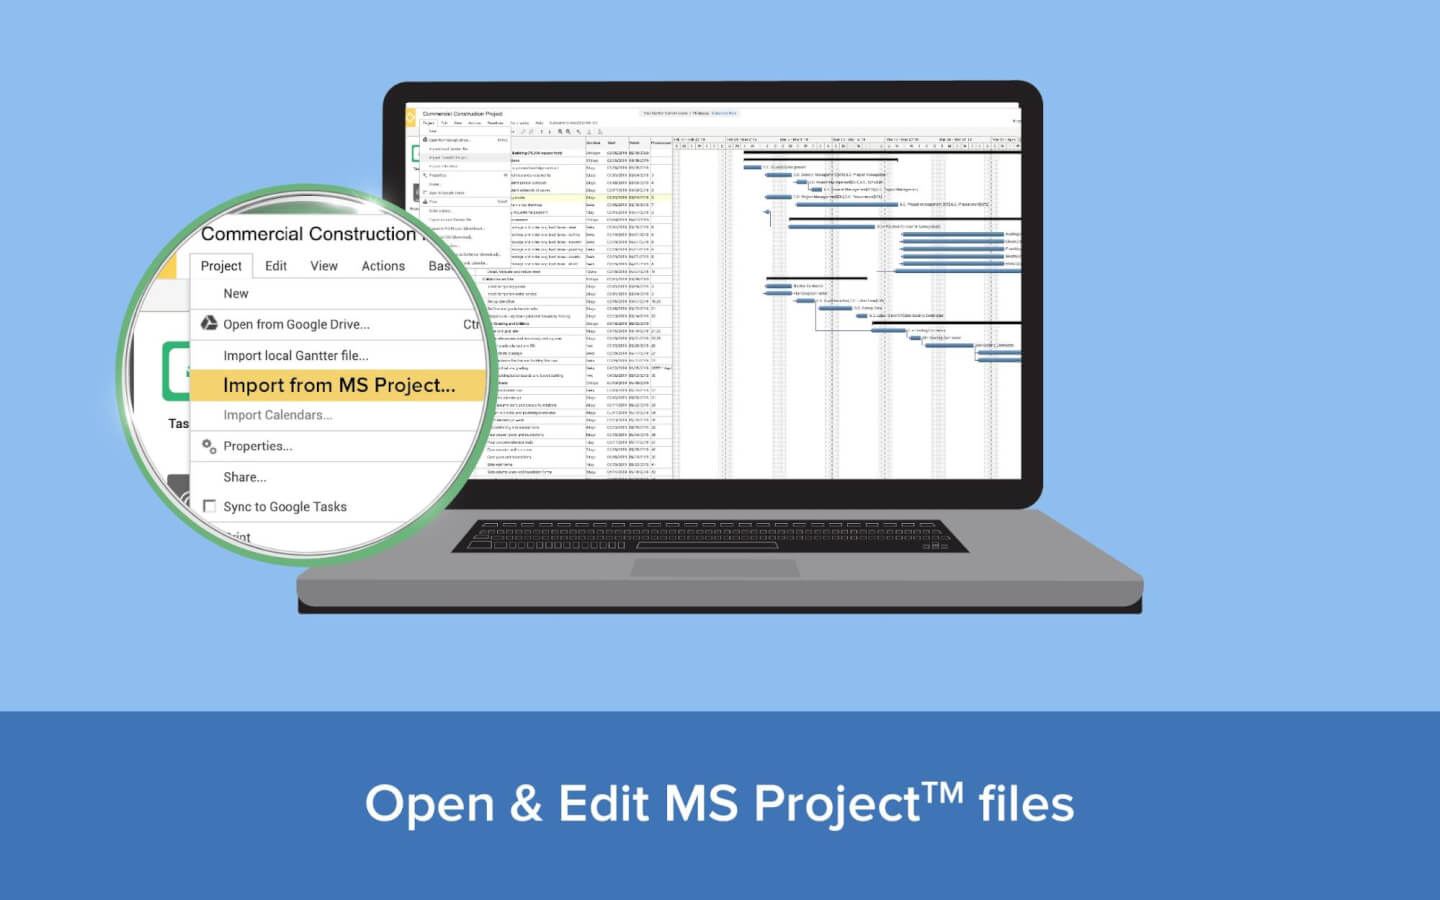 Open and edit MS Project files image